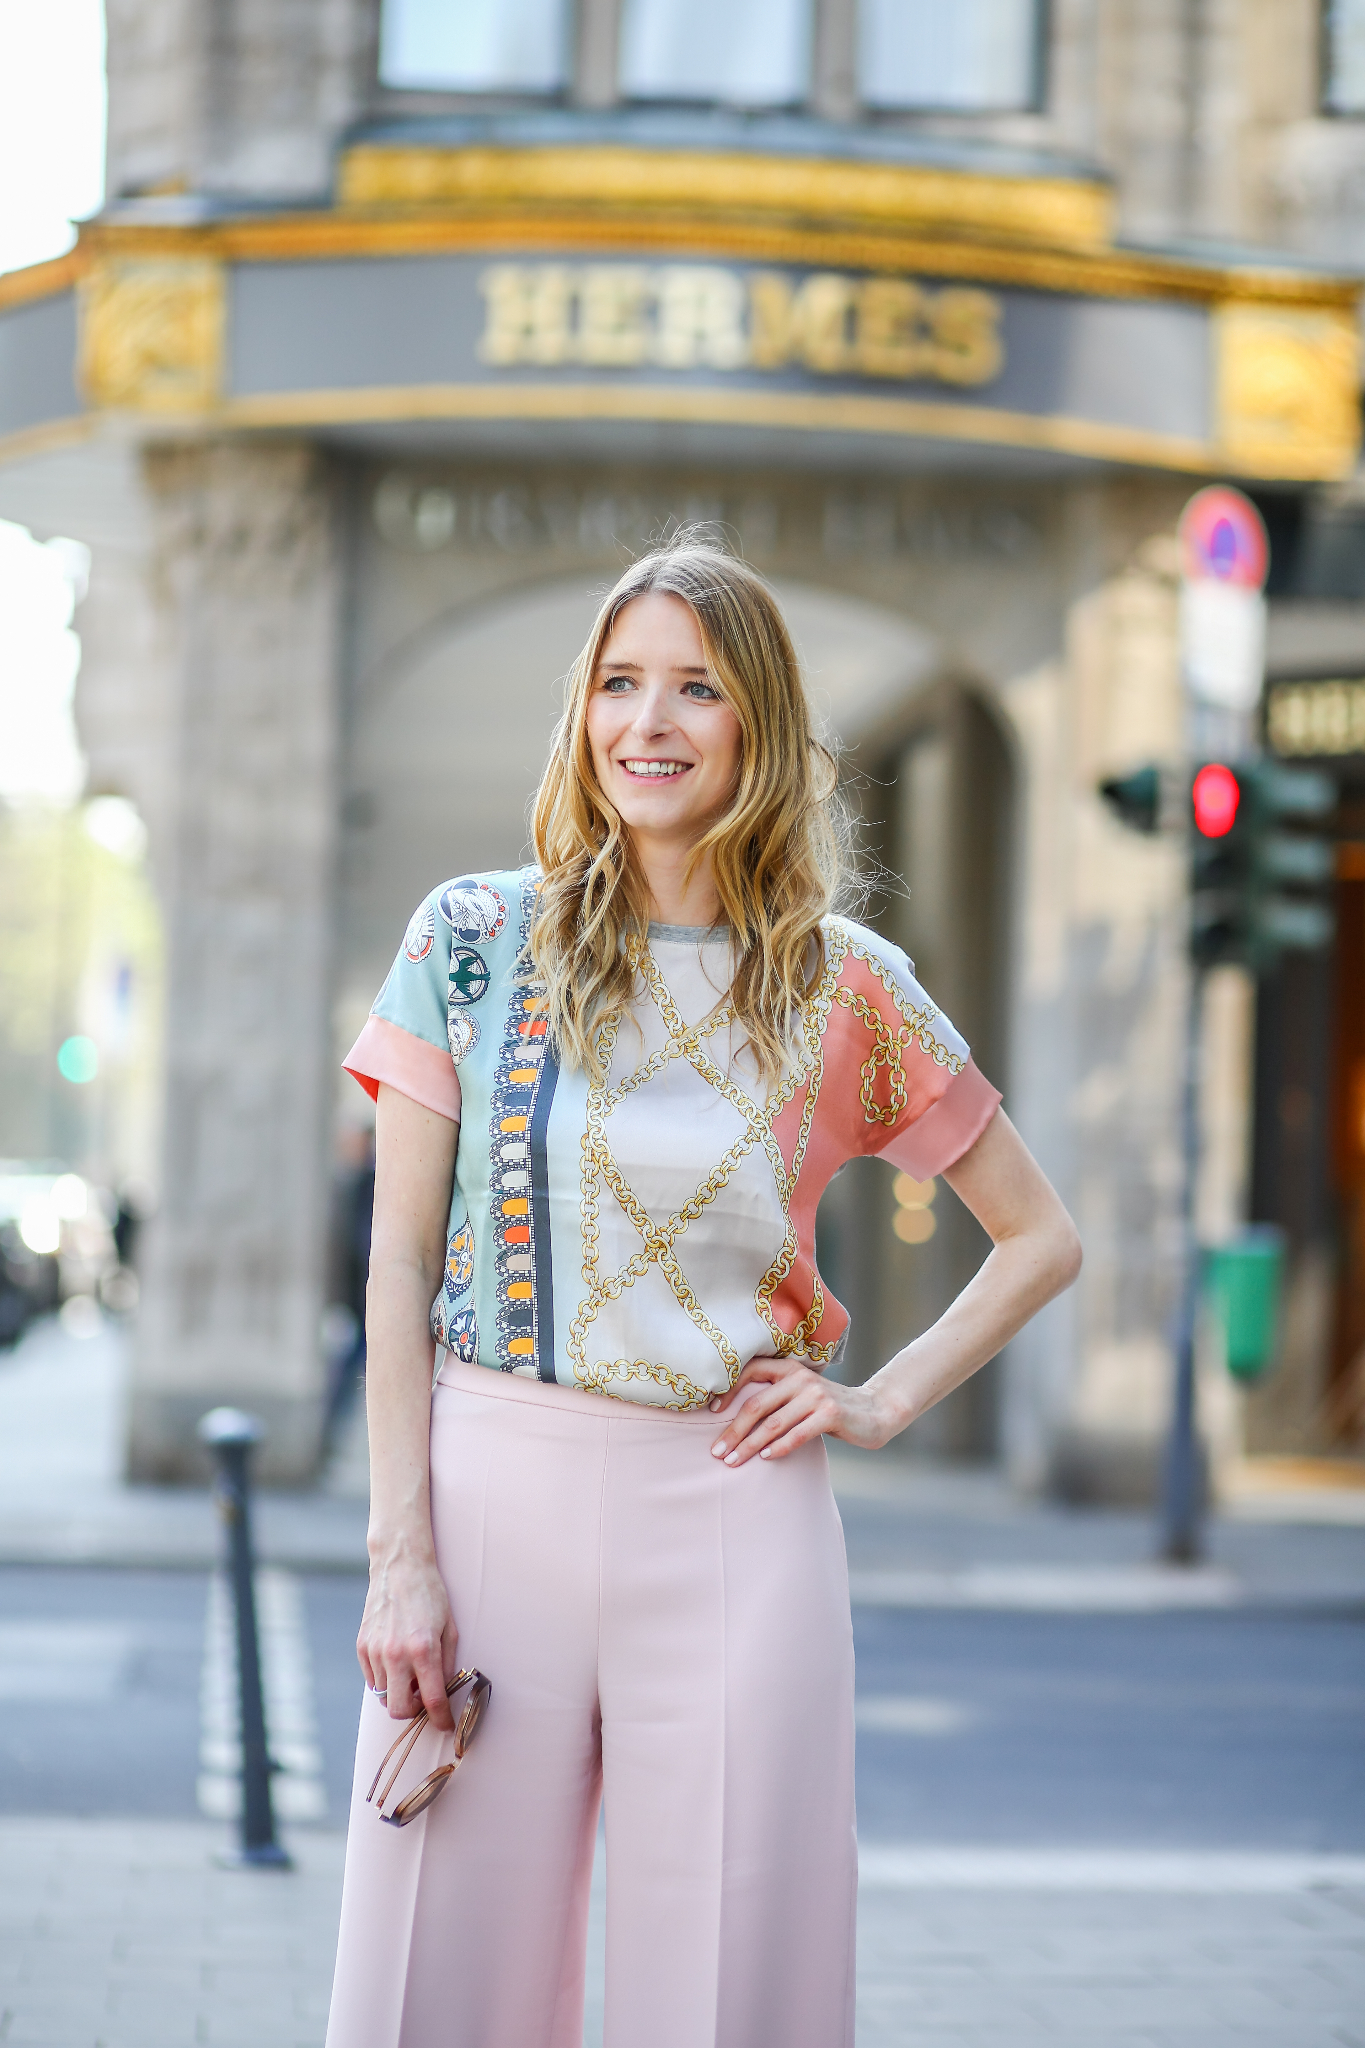 MOD-by-Monique-Fashion-Looks-A-touch-of-pink-14